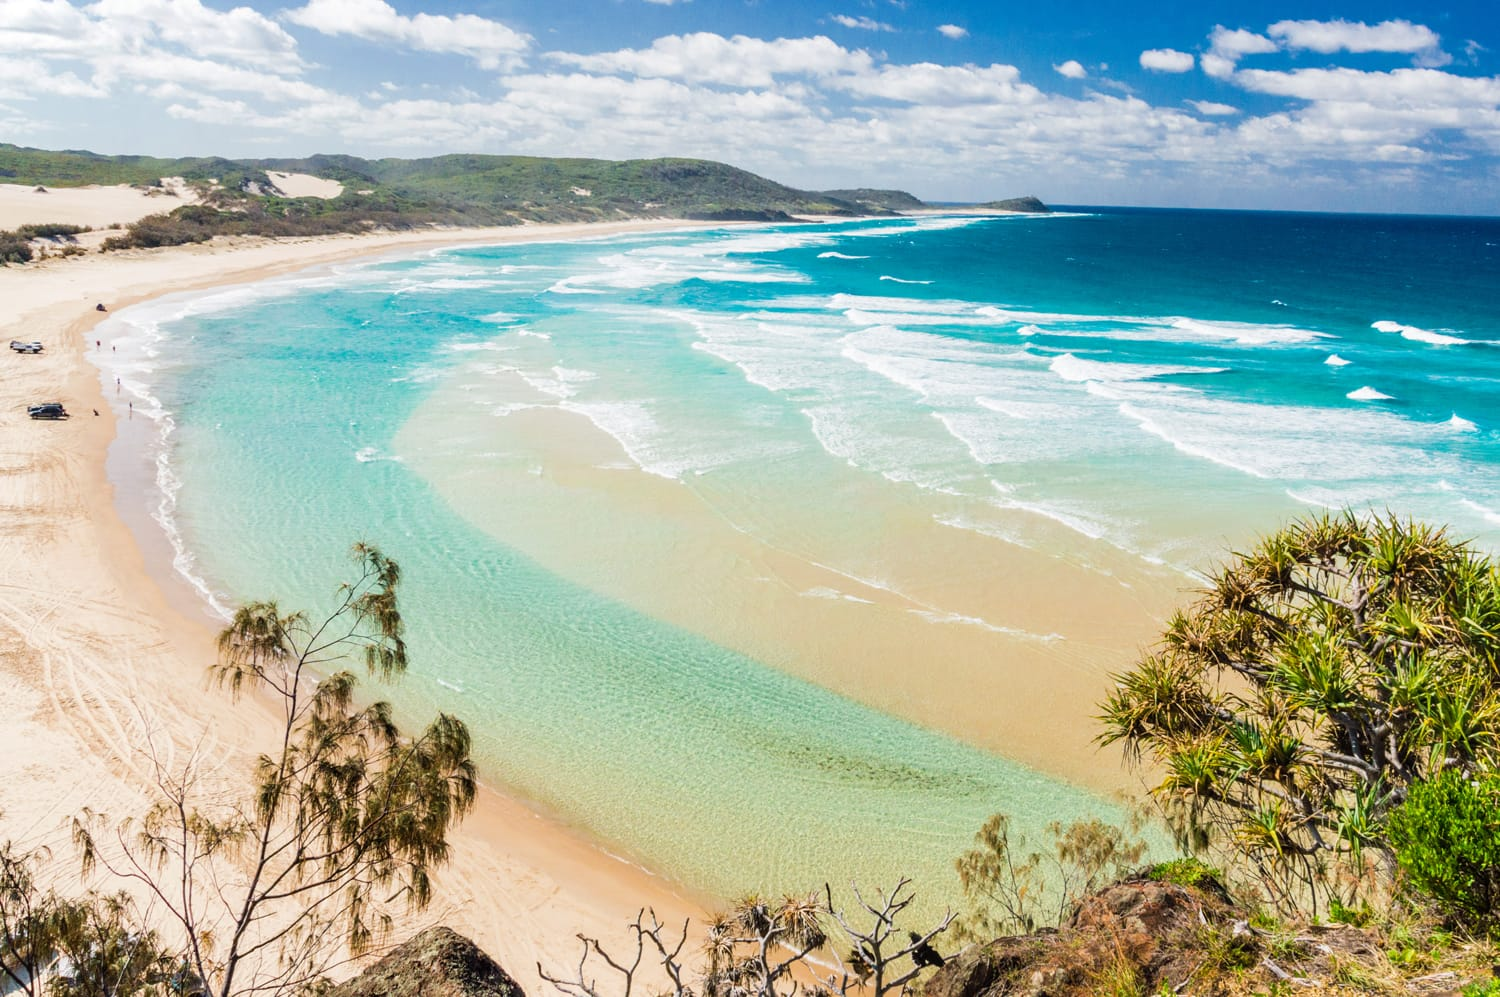 Fraser Island at Great Sandy National Park in Australia